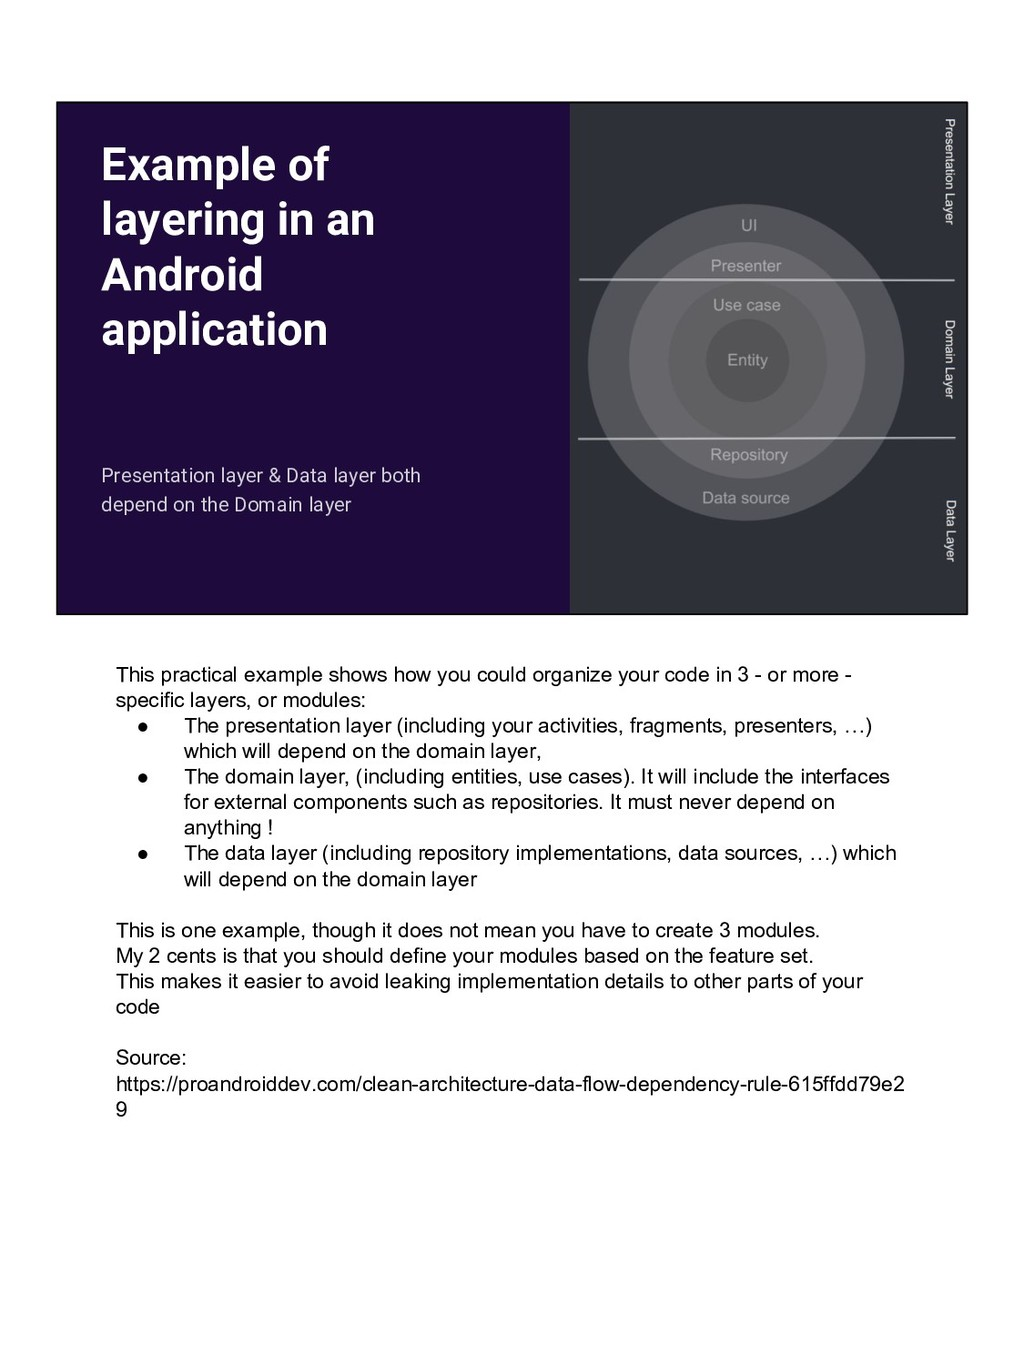 Example of layering in an Android application P...